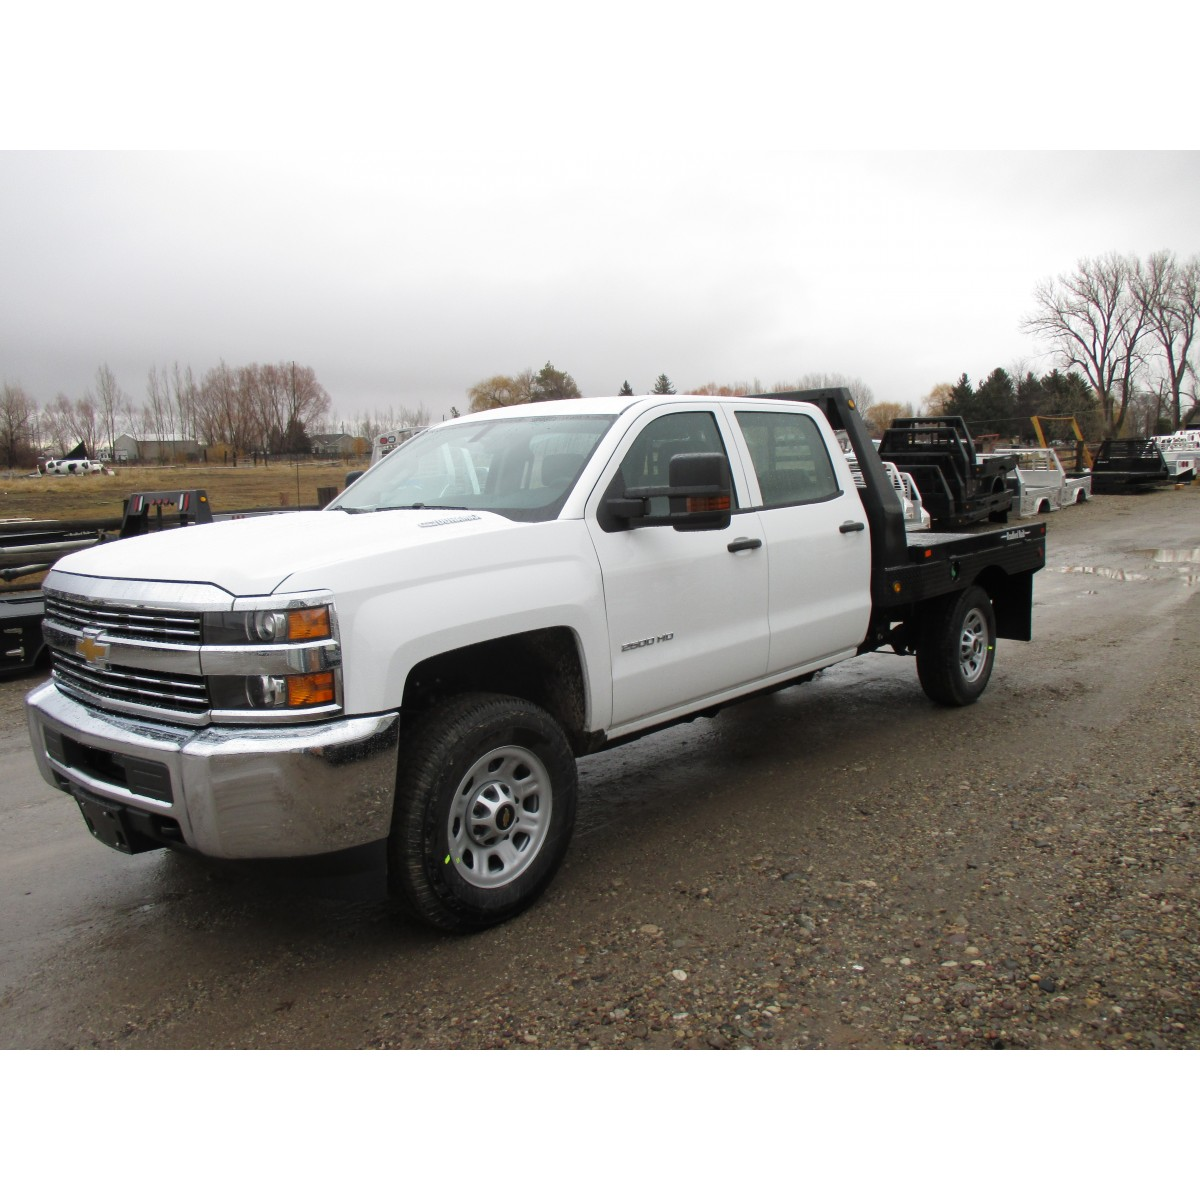 dodge truck wiring bradford built flatbed work bed dodge truck wiring harness issues